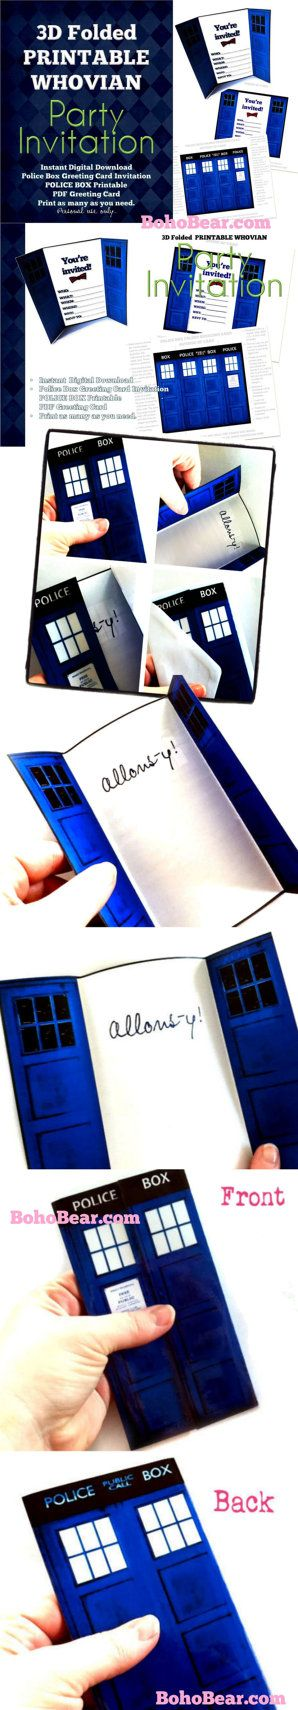 Doctor Who Inspired TARDIS Cards 3D Blue Police Box Invitation by Bohemian Bear on Etsy. Instant downloads are perfect for international customers (avoid shipping fees!) and for last-minute shoppers!